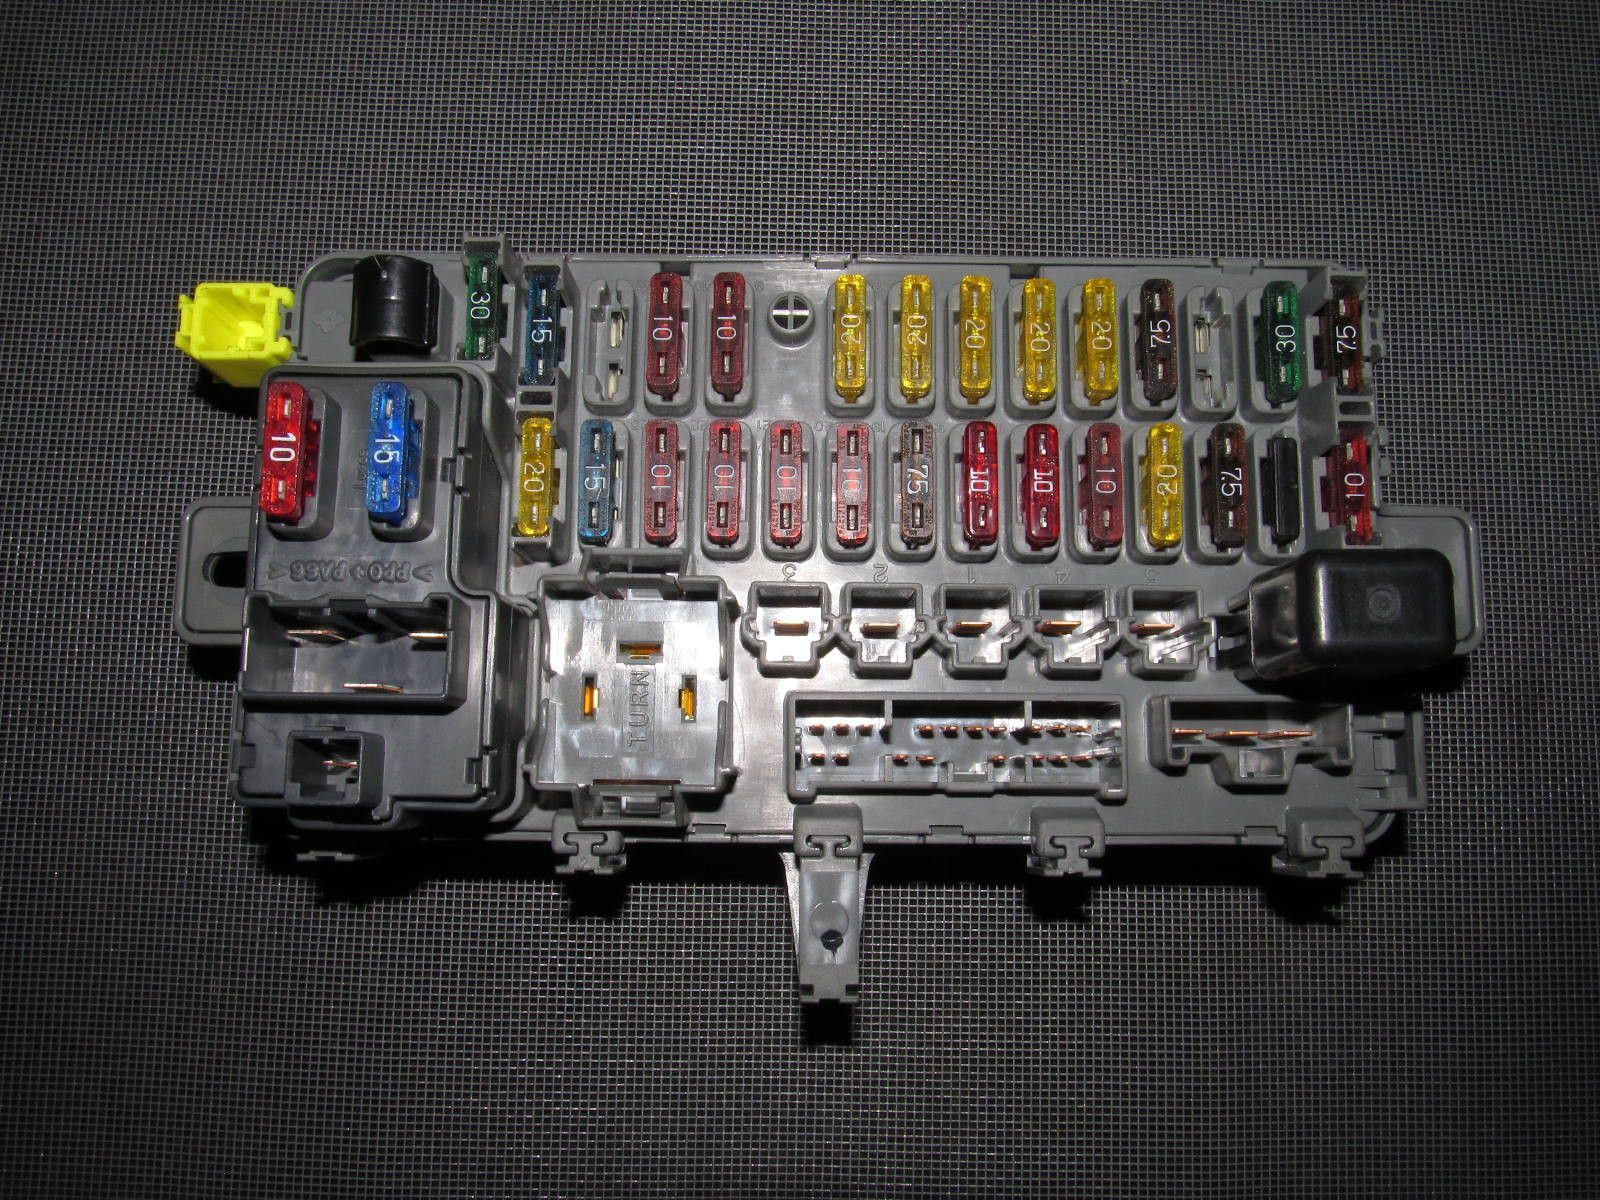 94 01 acura integra oem interior fuse box with integration unit 1994 buick lesabre fuse diagram fuse diagram for 1994 acura integra [ 1600 x 1200 Pixel ]